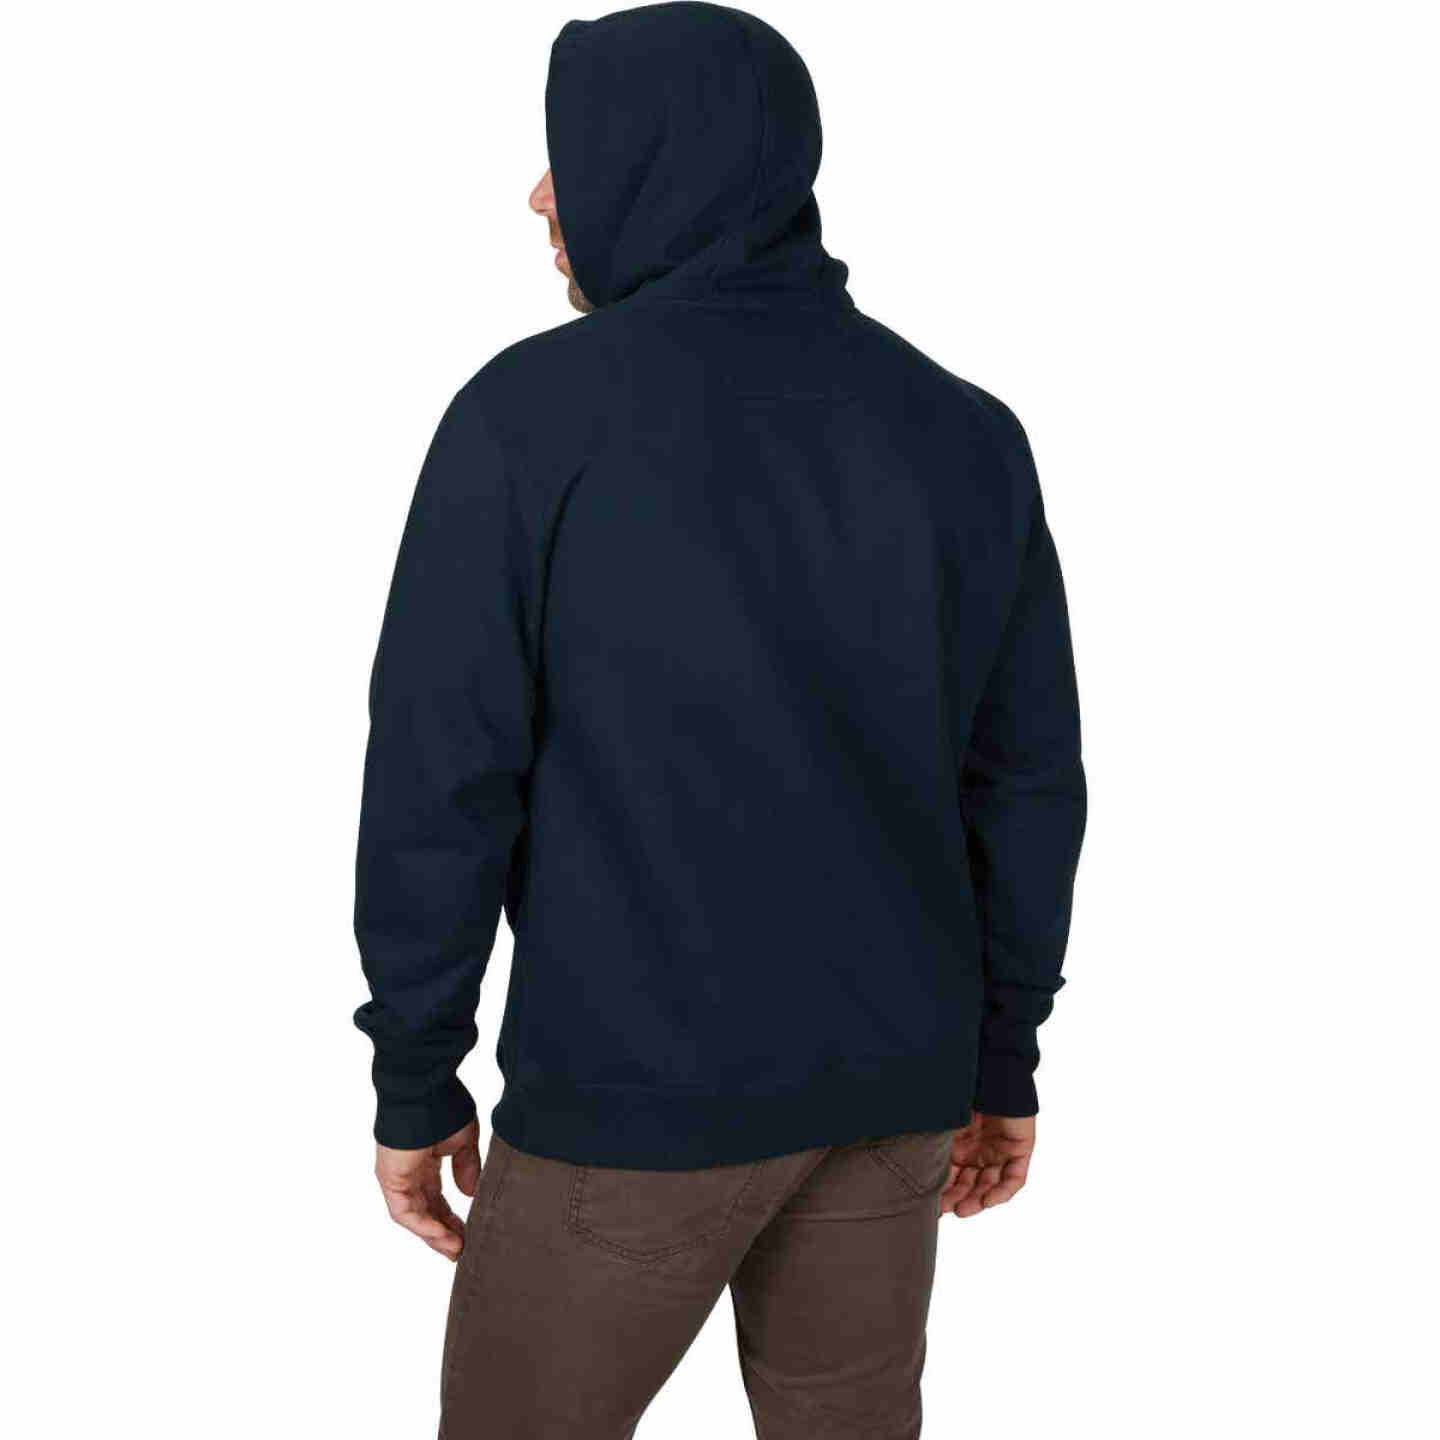 Milwaukee XL Navy Blue Heavy-Duty Pullover Hooded Sweatshirt Image 3